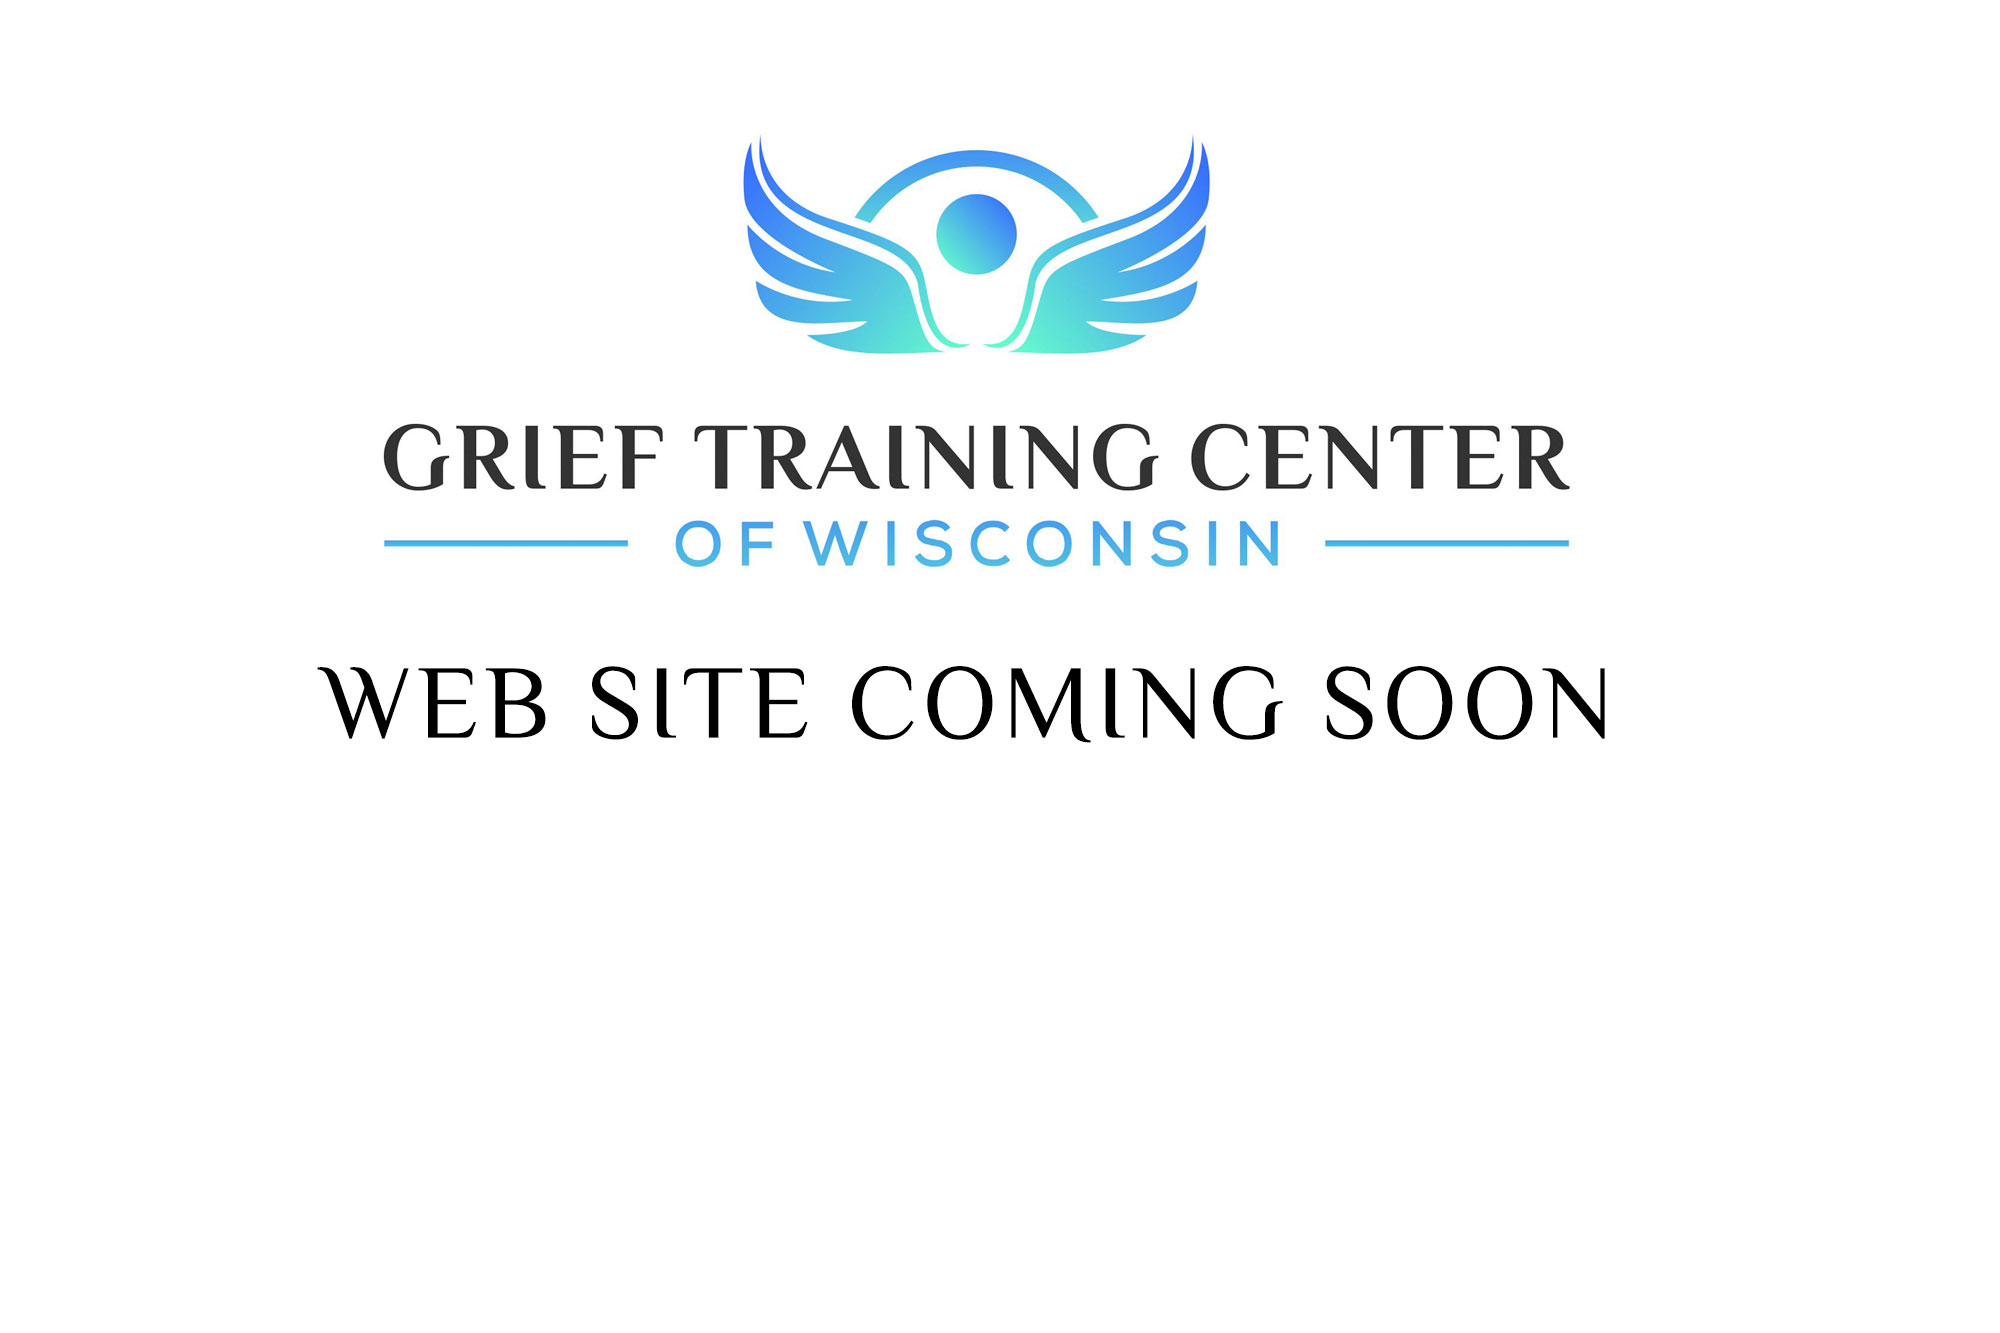 The Grief Training Center of Wisconsin